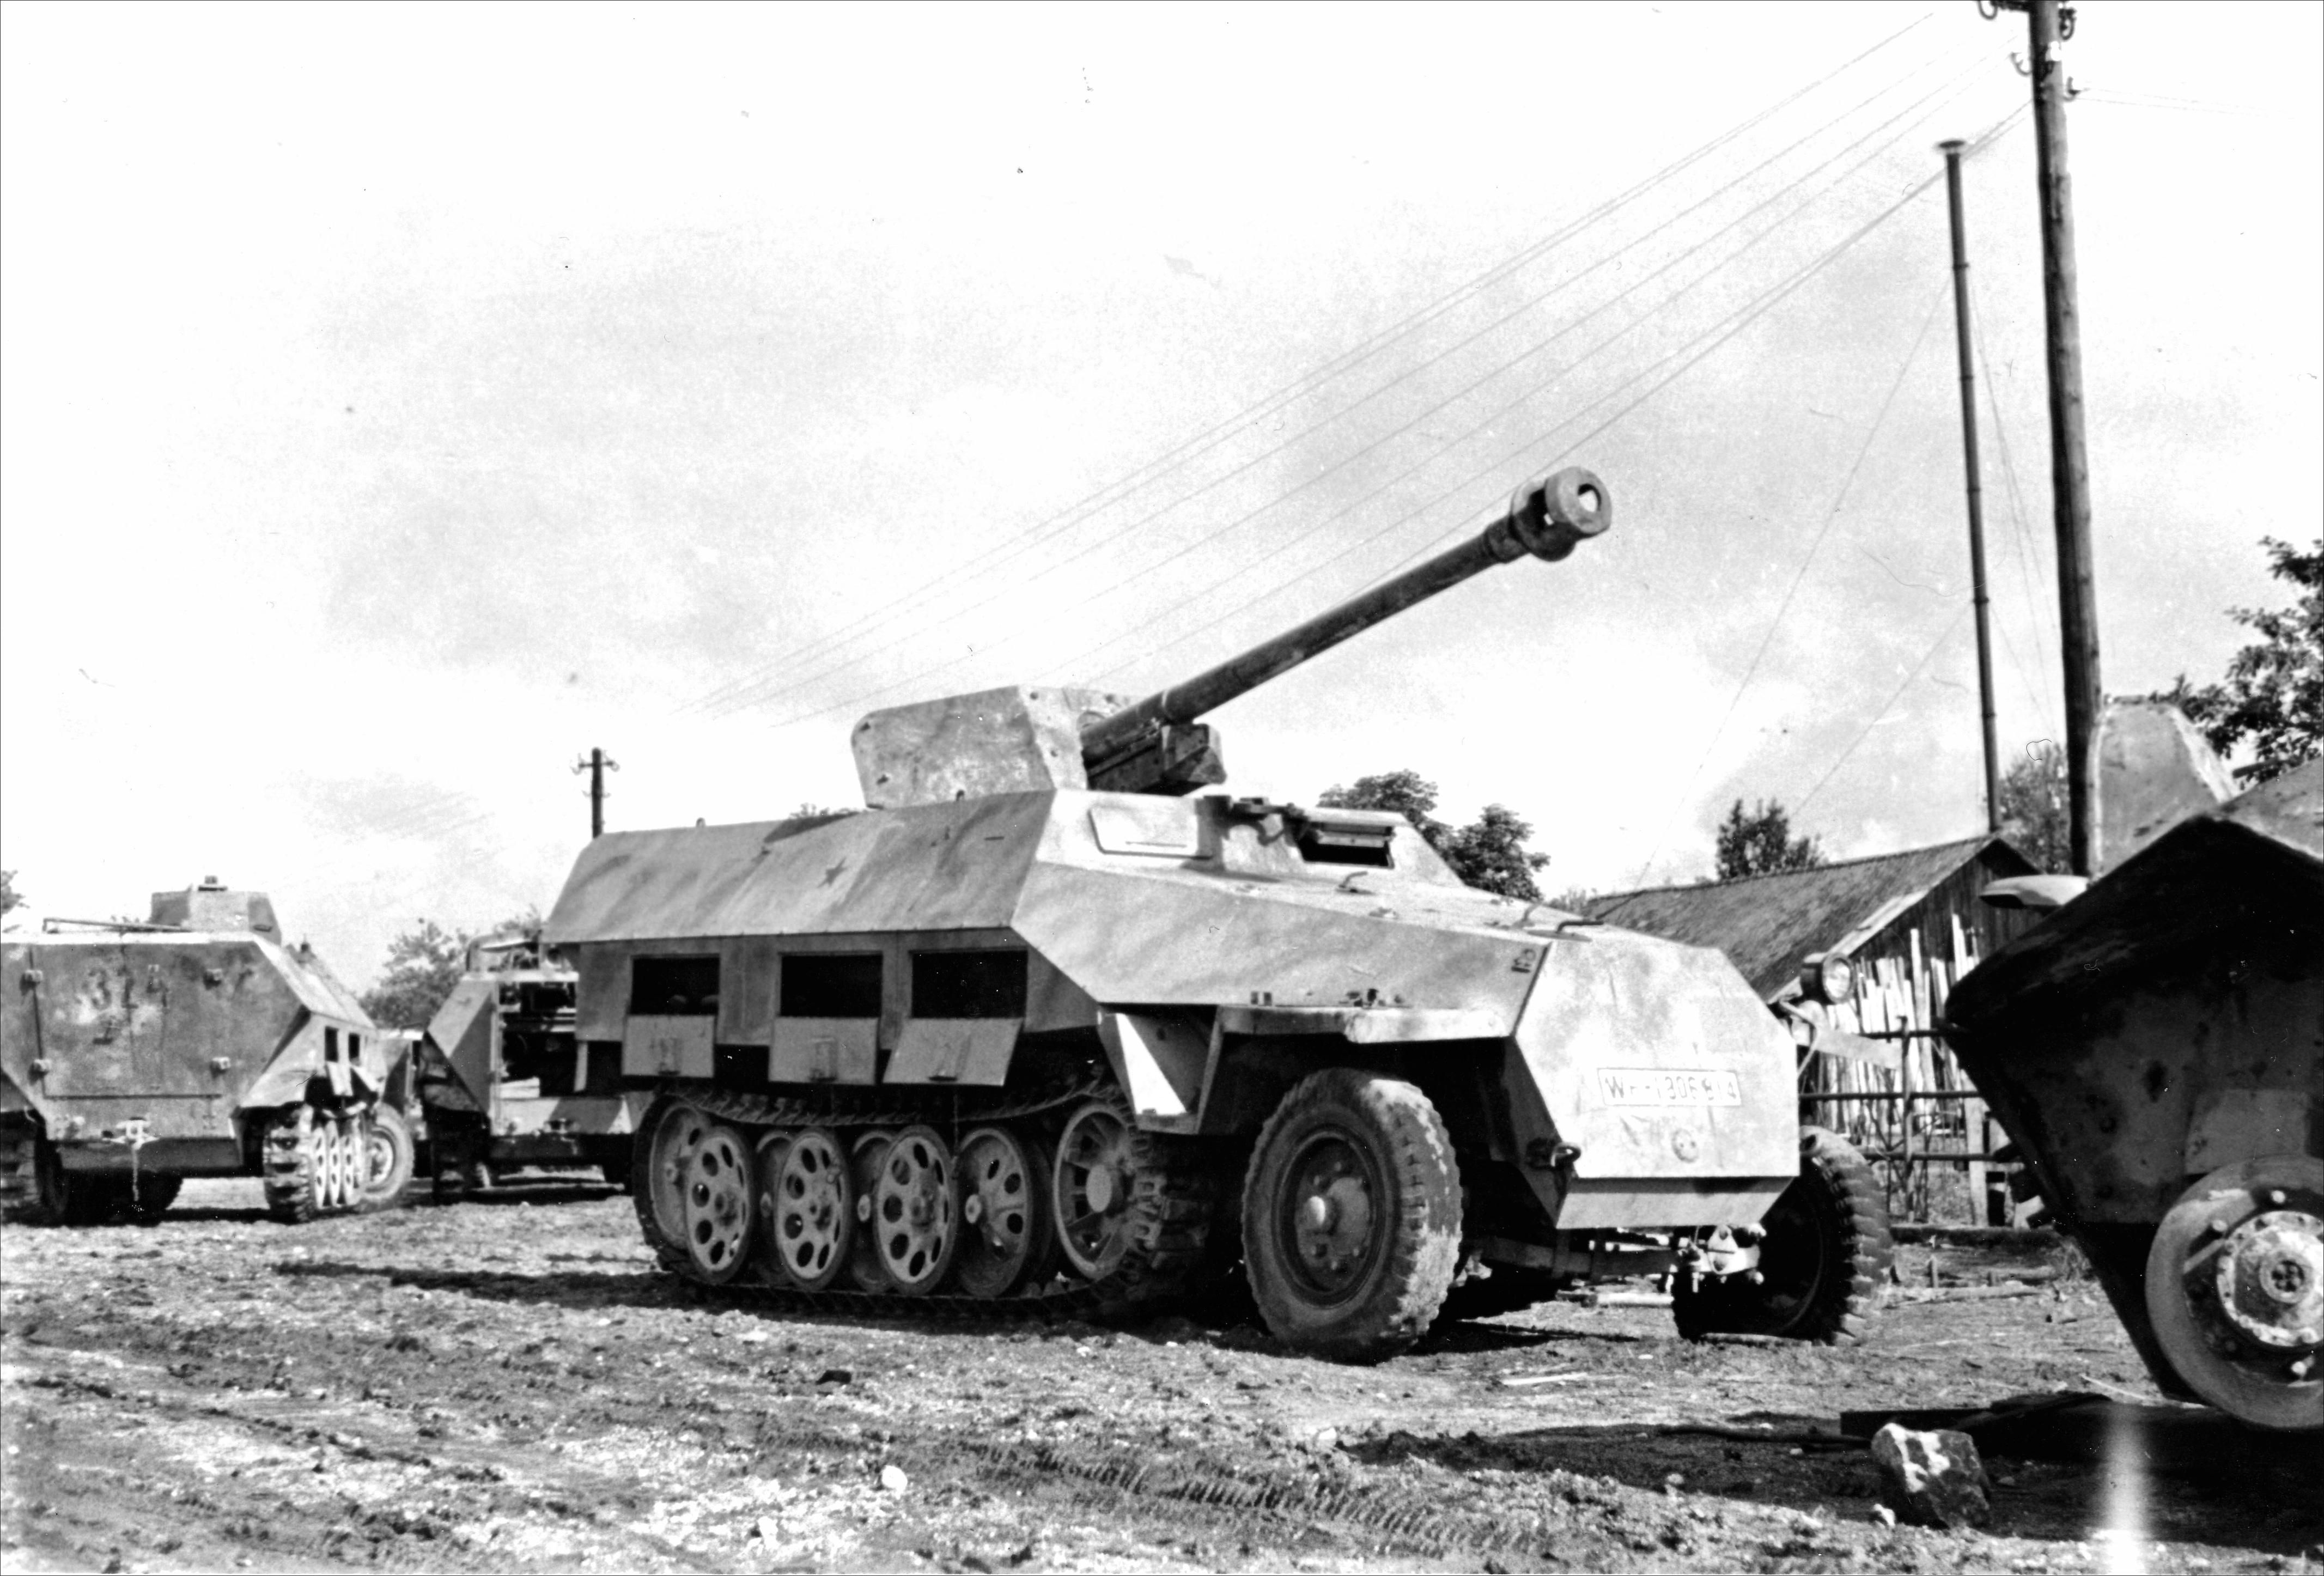 German 50 Mm Anti Tank Gun: Sd.Kfz. 251/22 Armored Halftrack, It Has Been Armed With